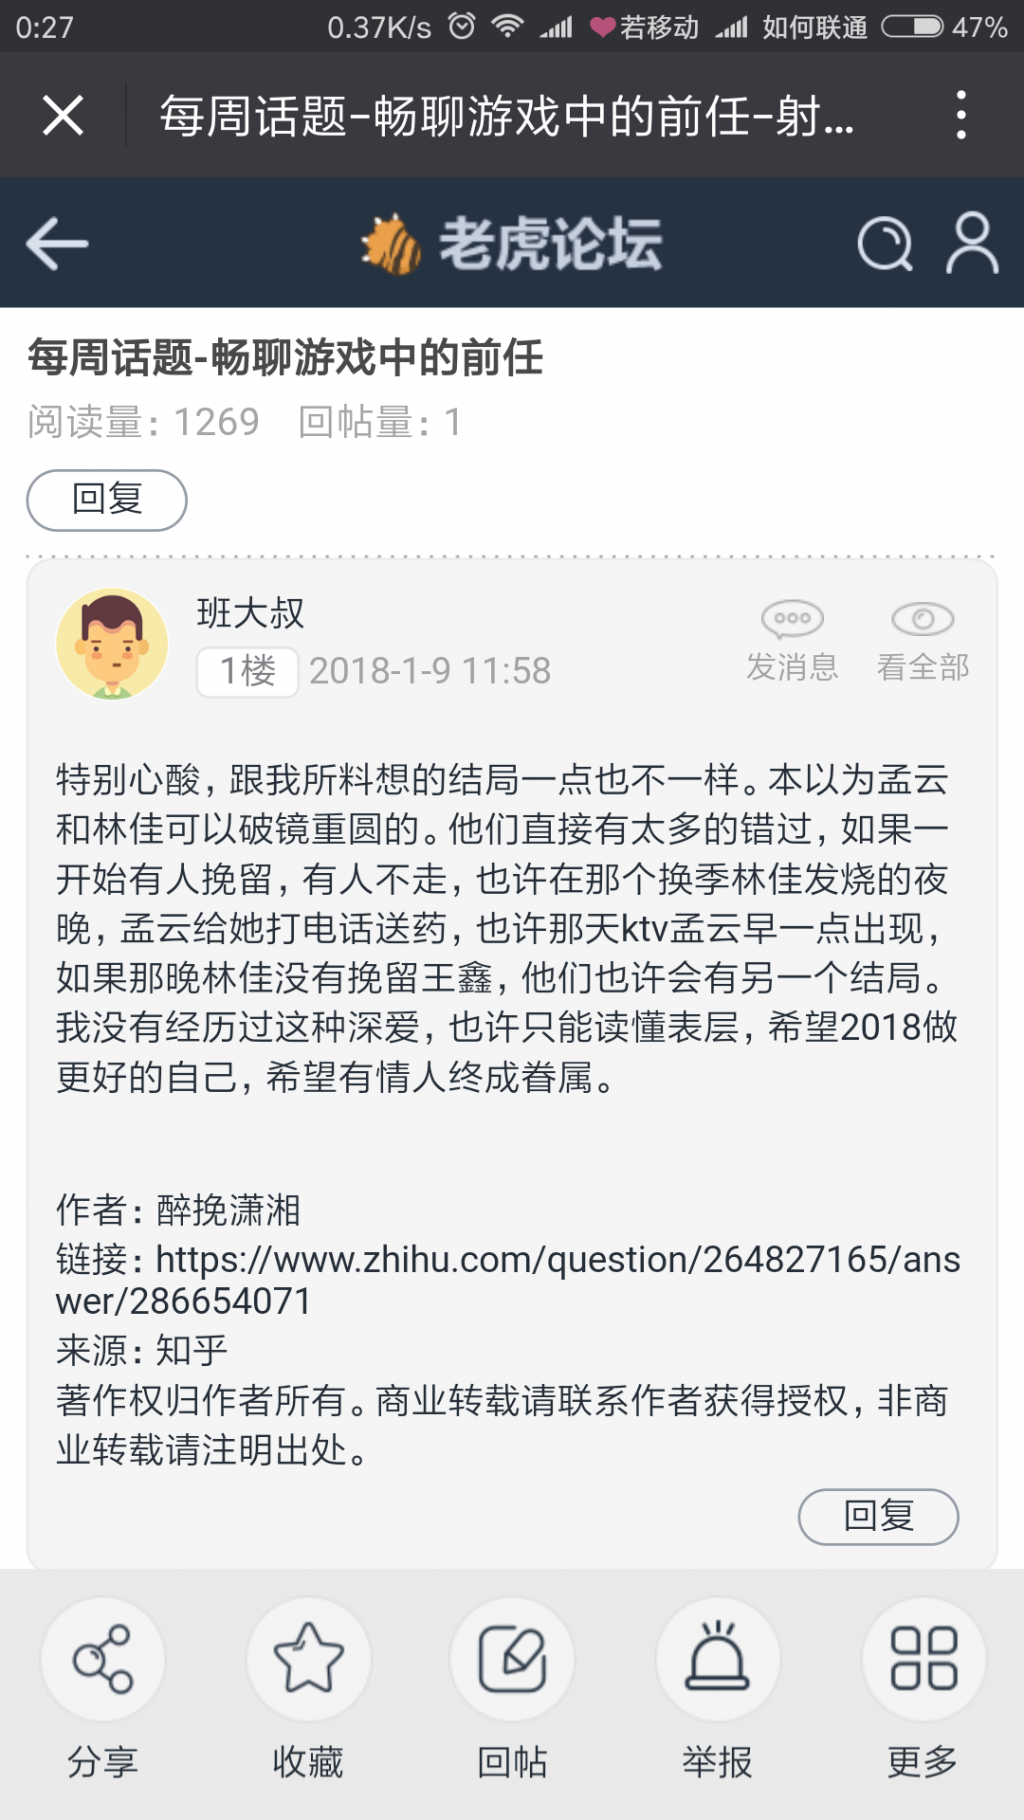 Screenshot_2018-01-12-00-27-58-112_com.tencent.mm.png